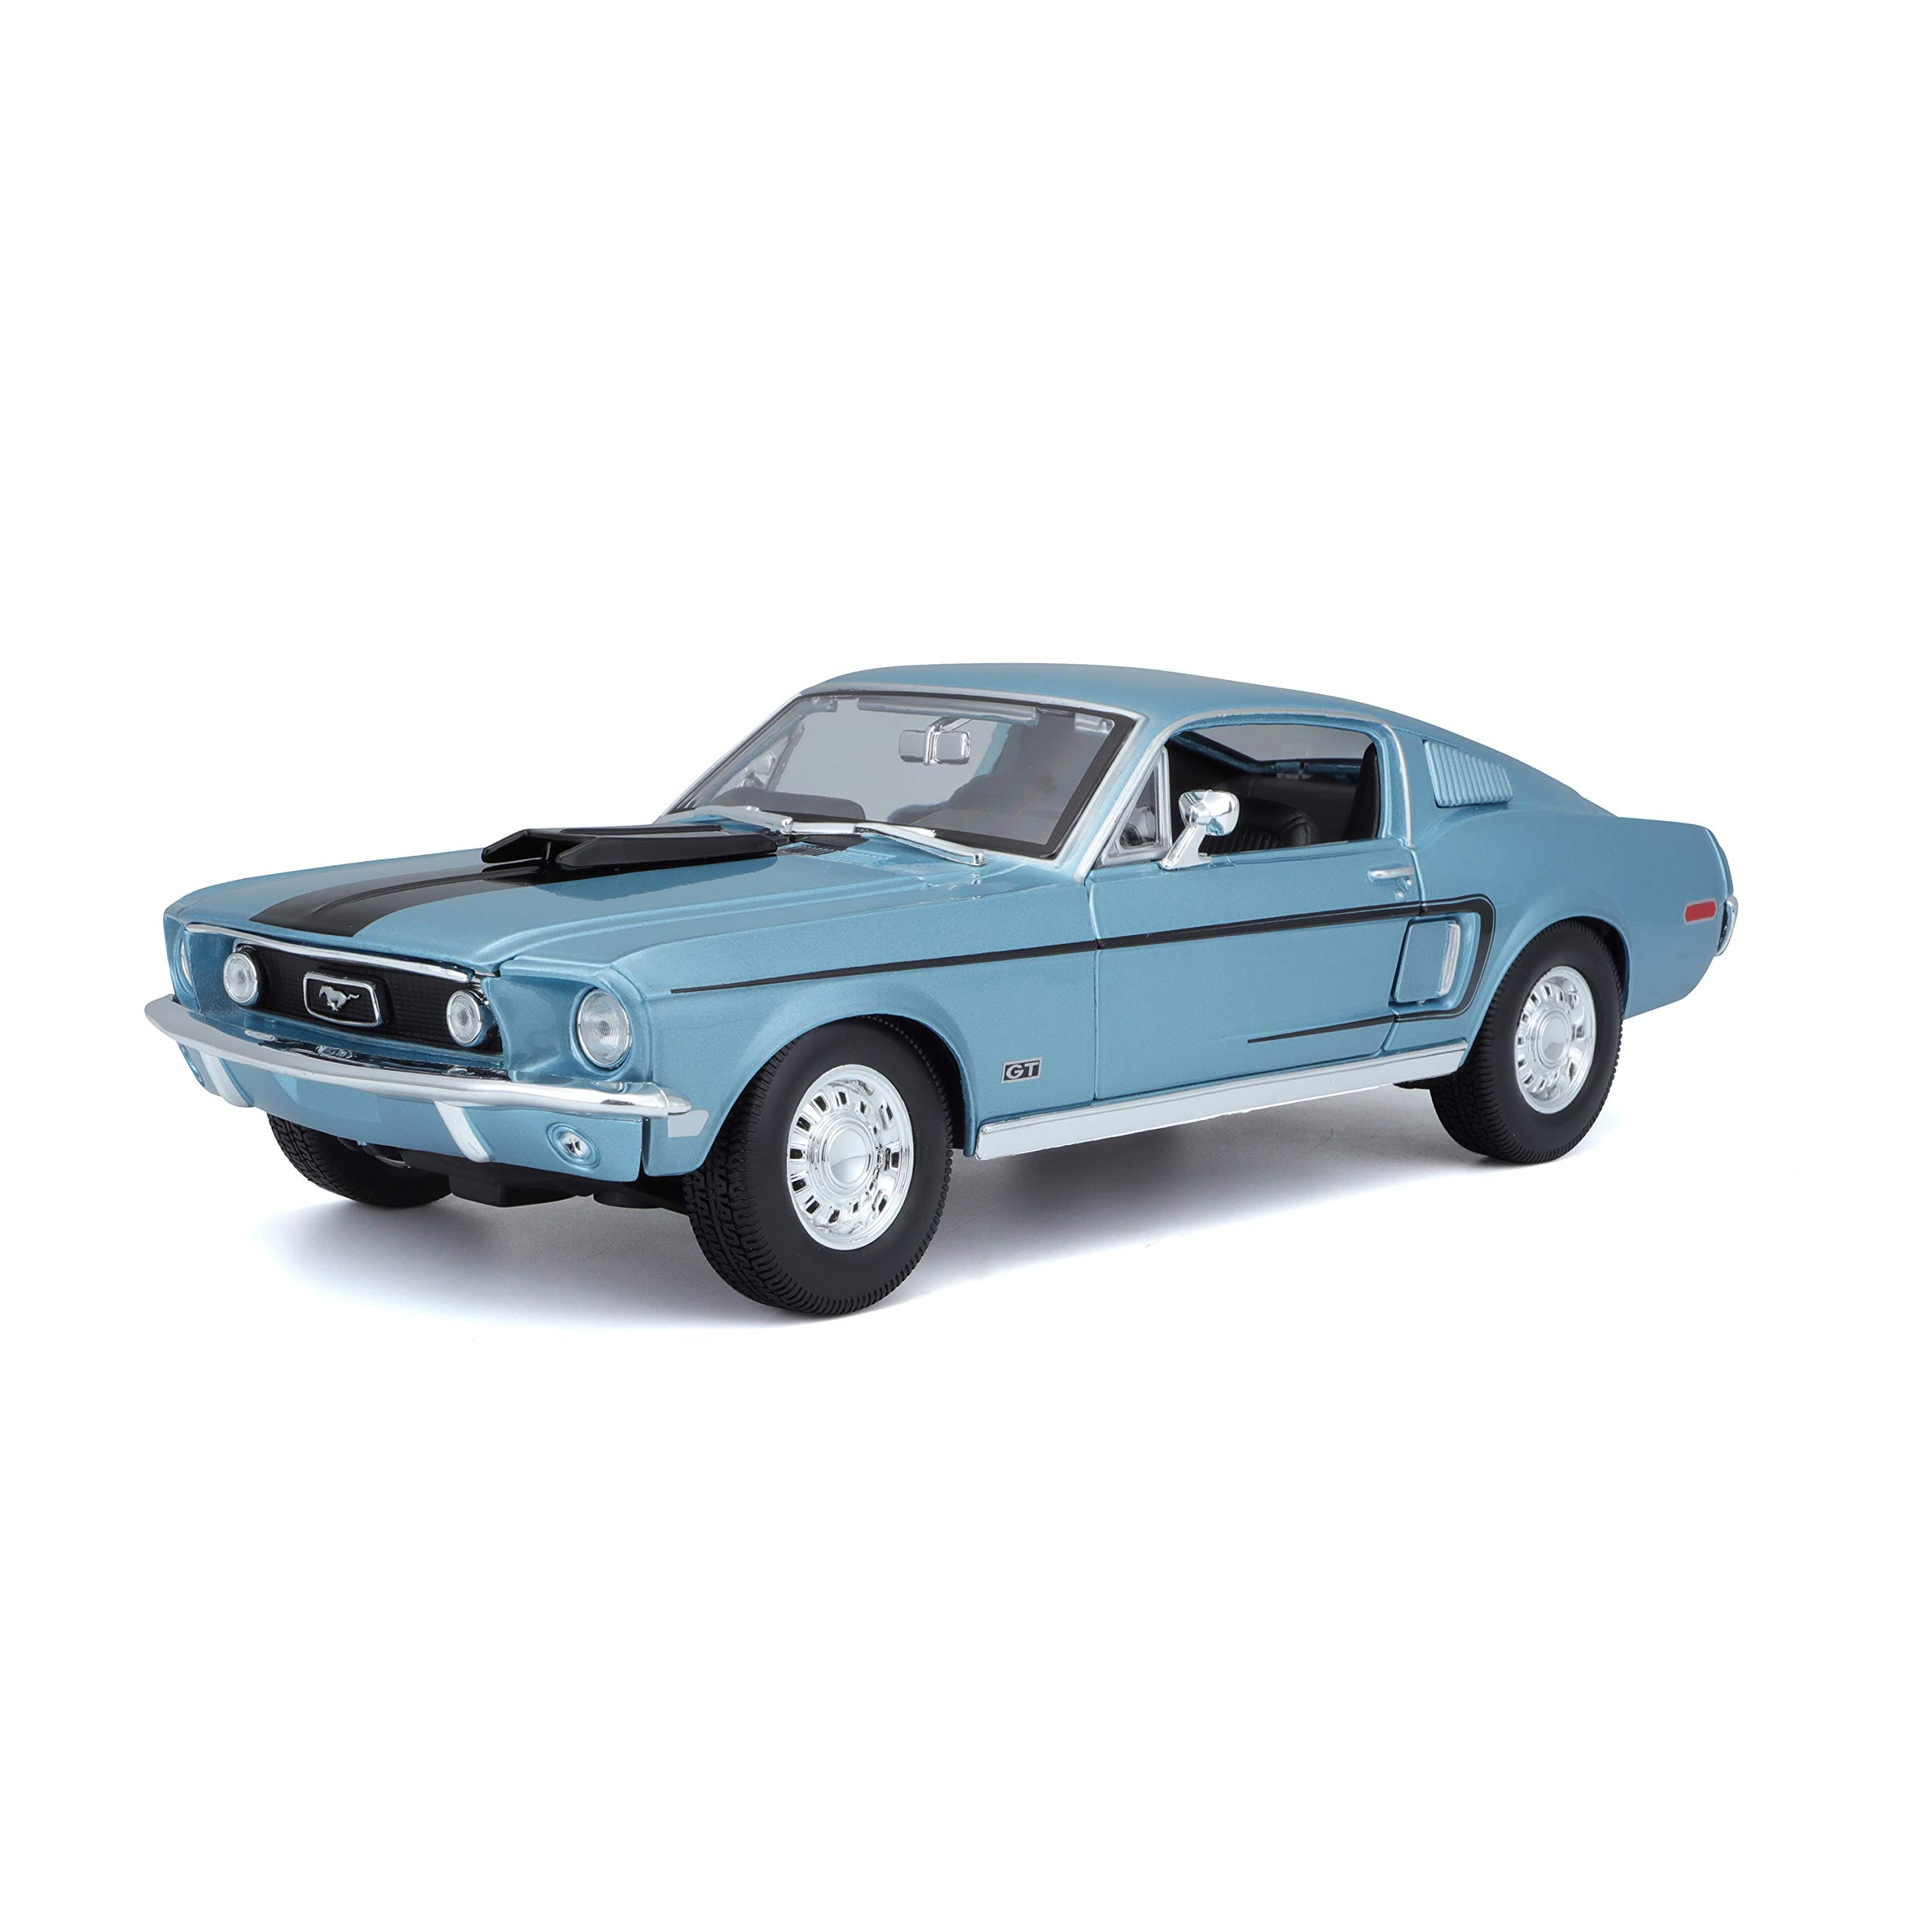 Maisto 1968 Ford Mustang GT Cobra Jet Hard Top 1/18 Scale Diecast Model Vehicle Blue